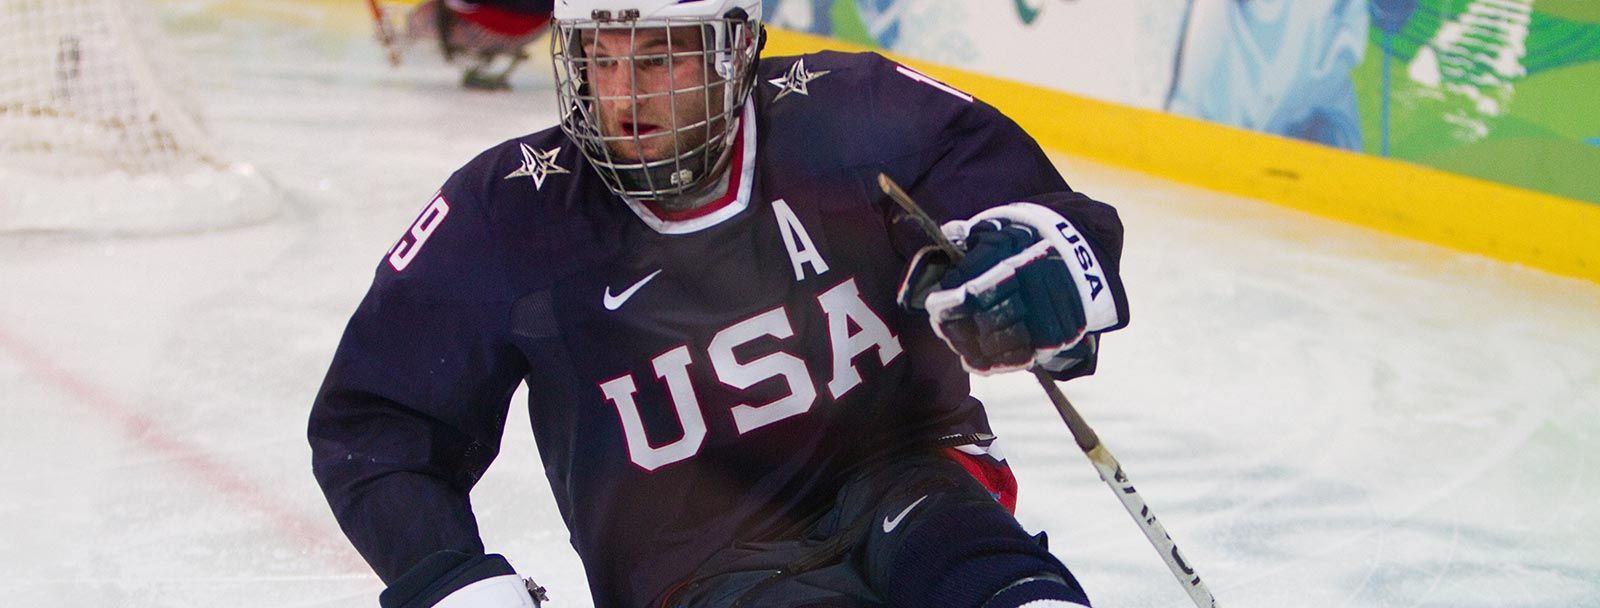 Taylor Chace competing for the US Sled Hockey Team